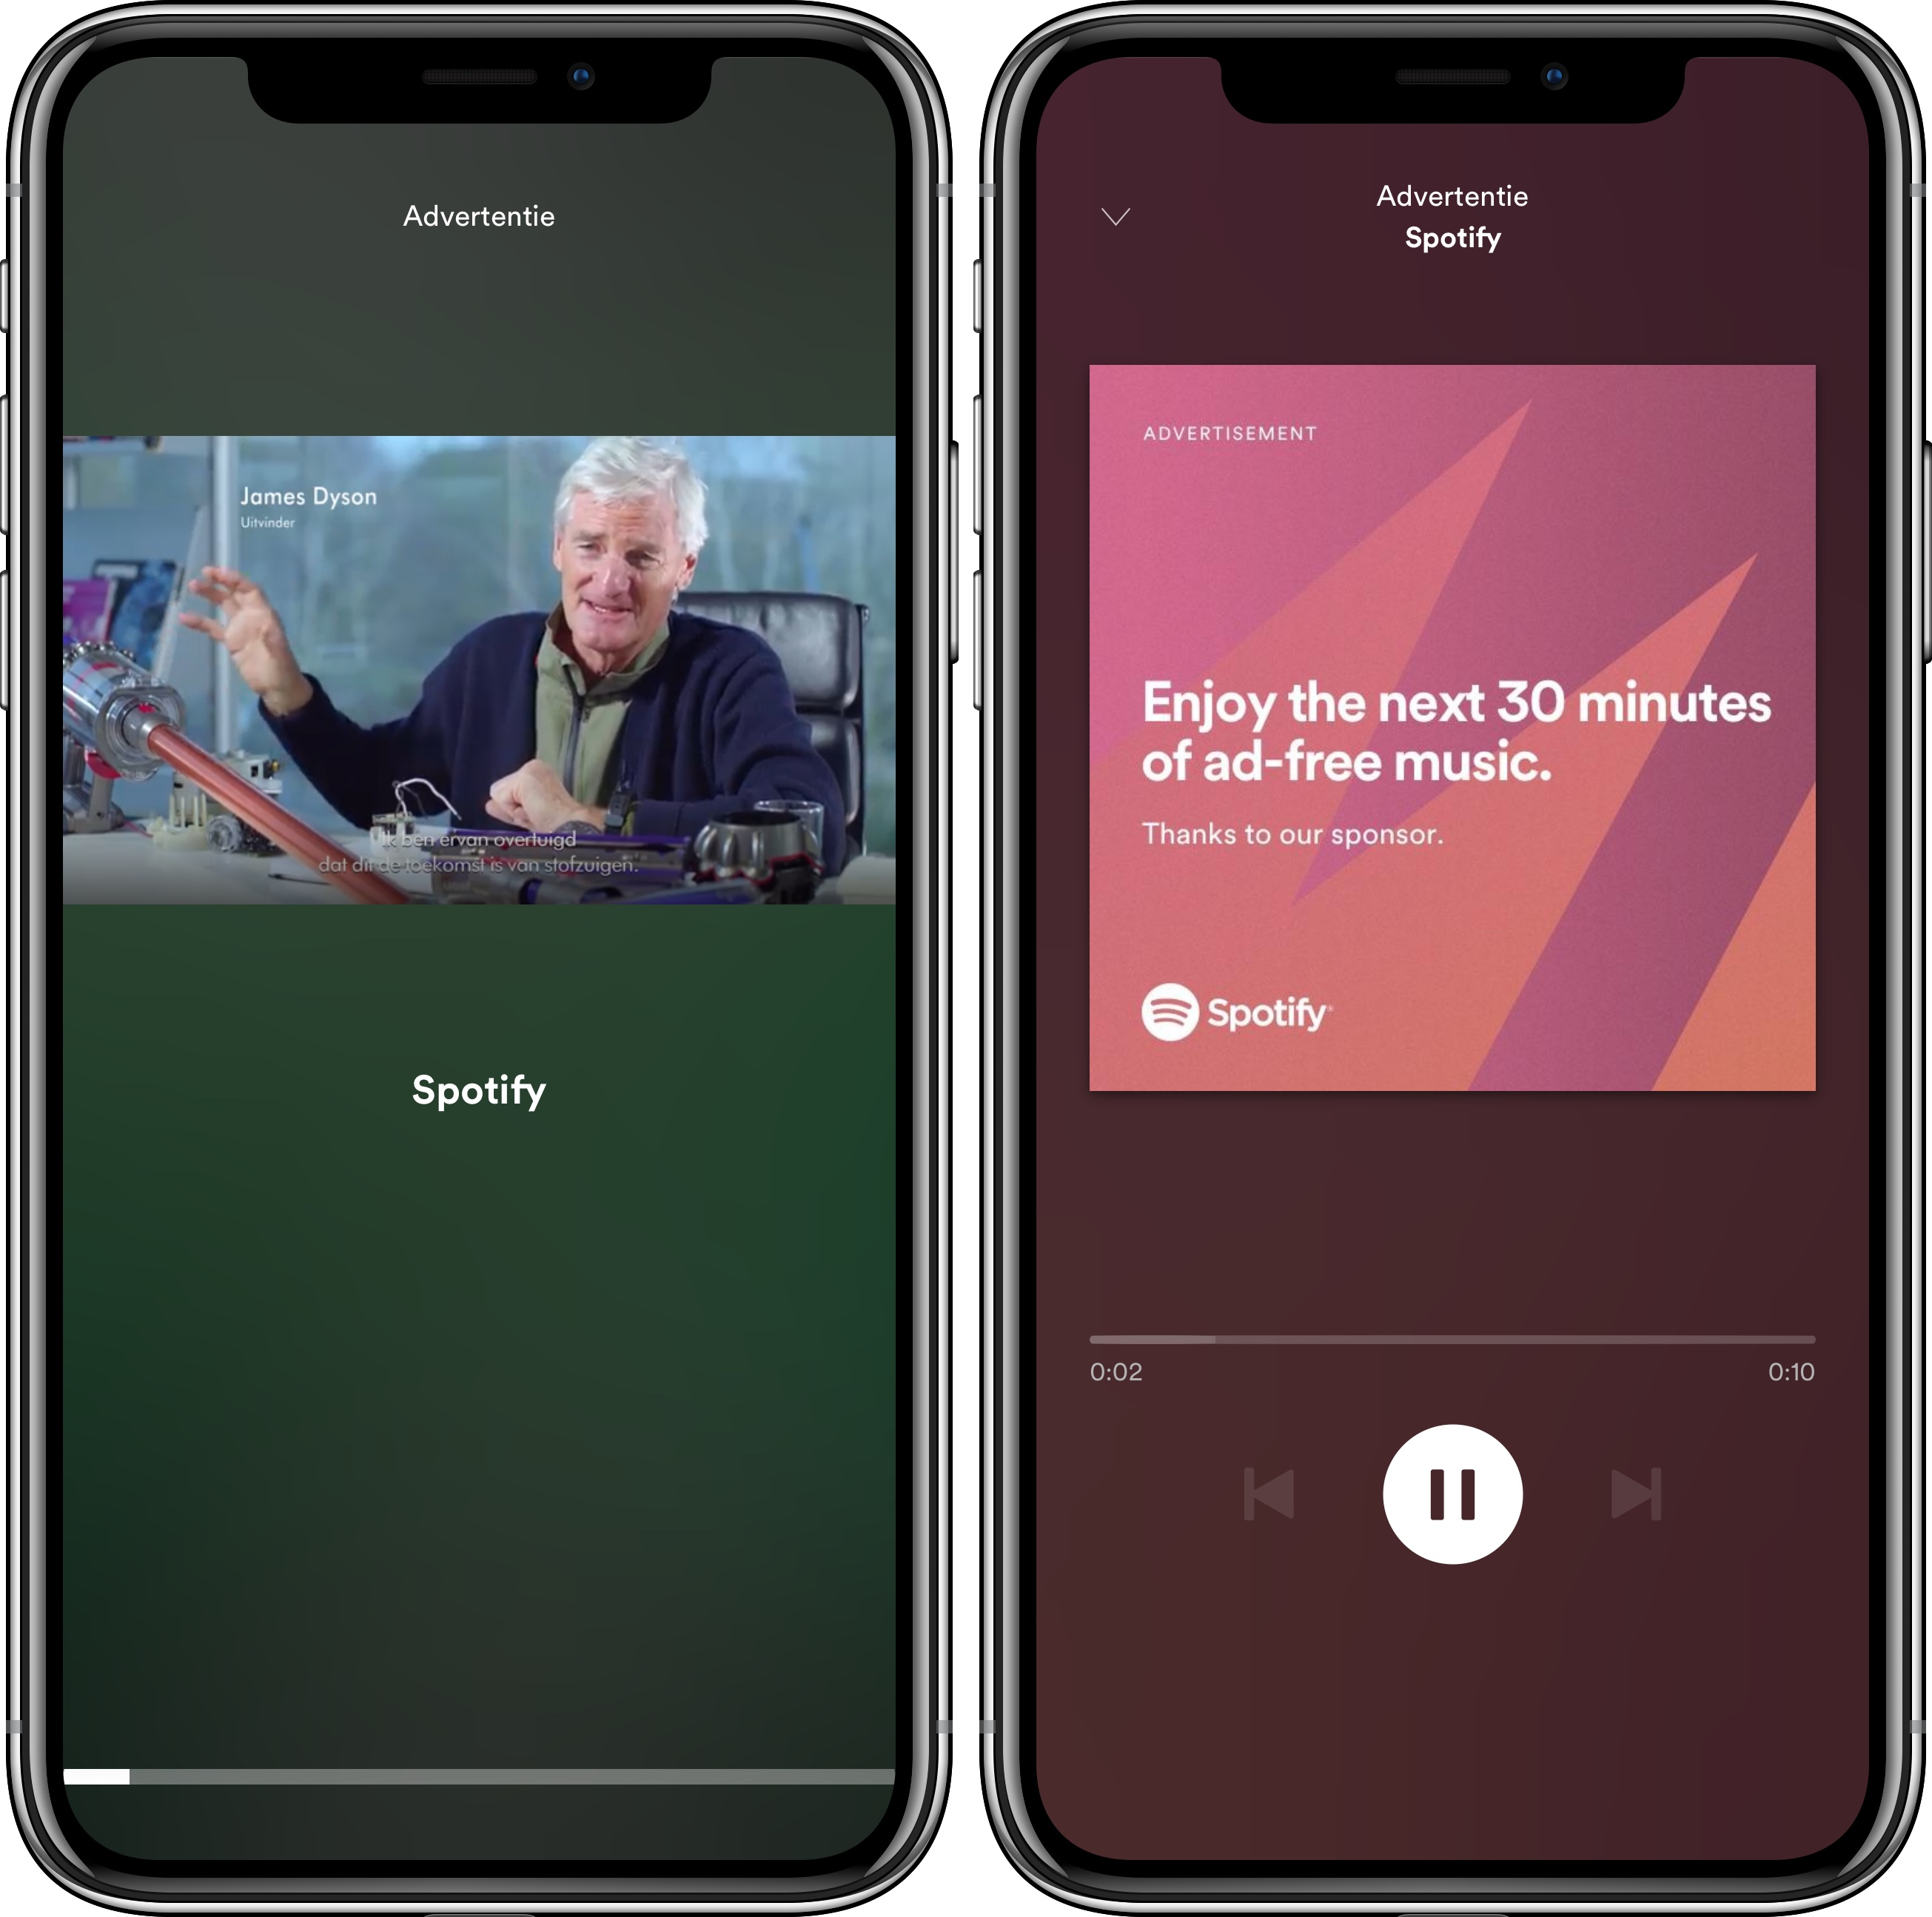 Spotify advertenties